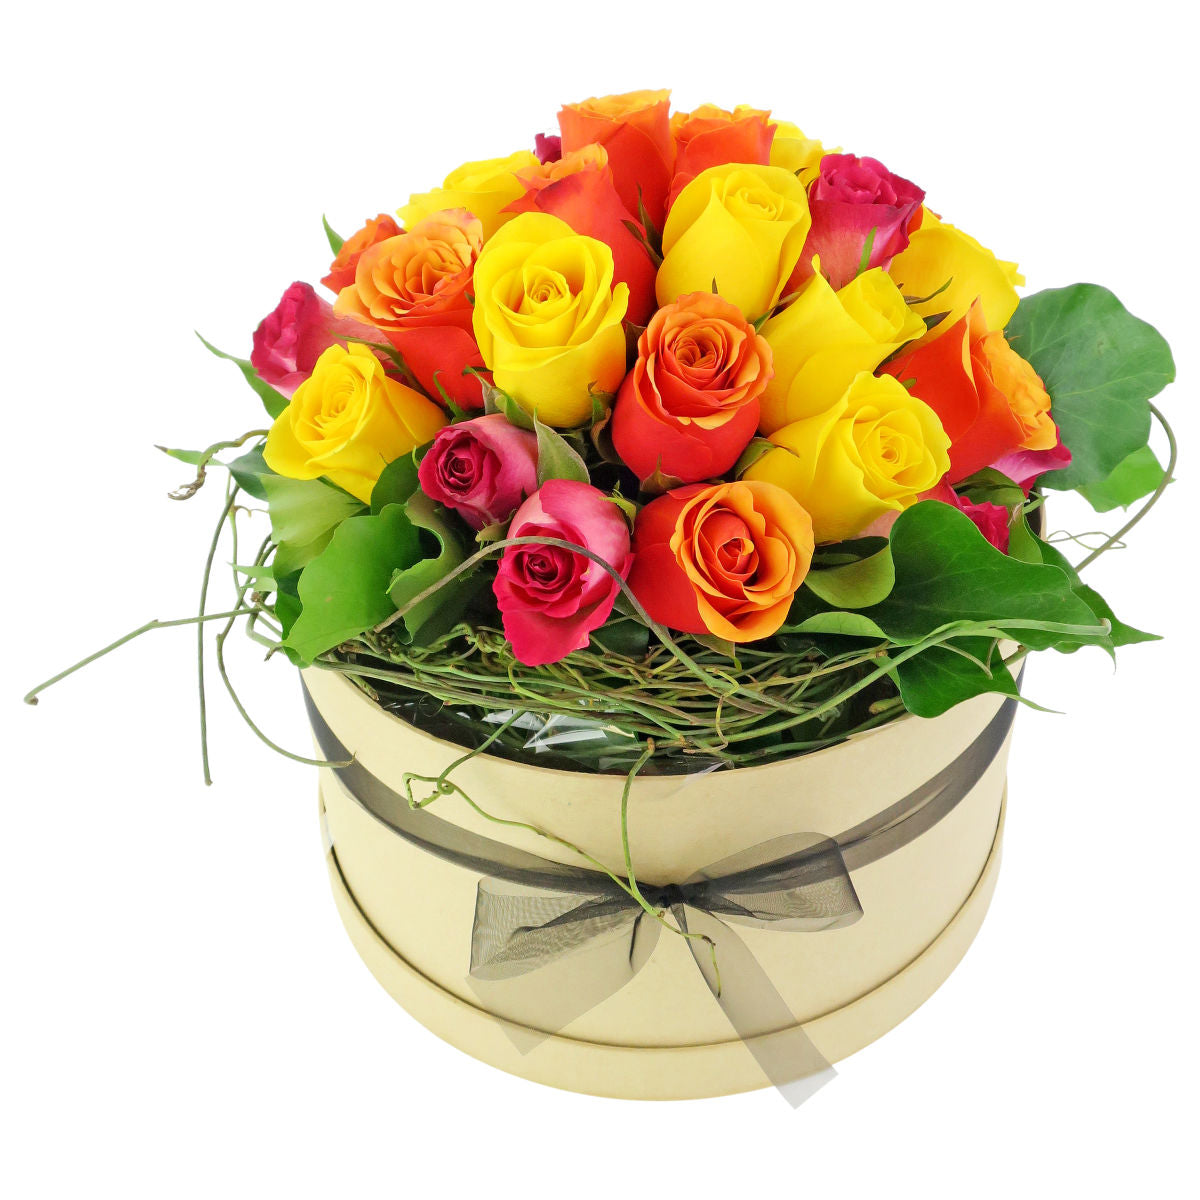 Pastel Roses Round Box - So Fancy - Arabian Petals